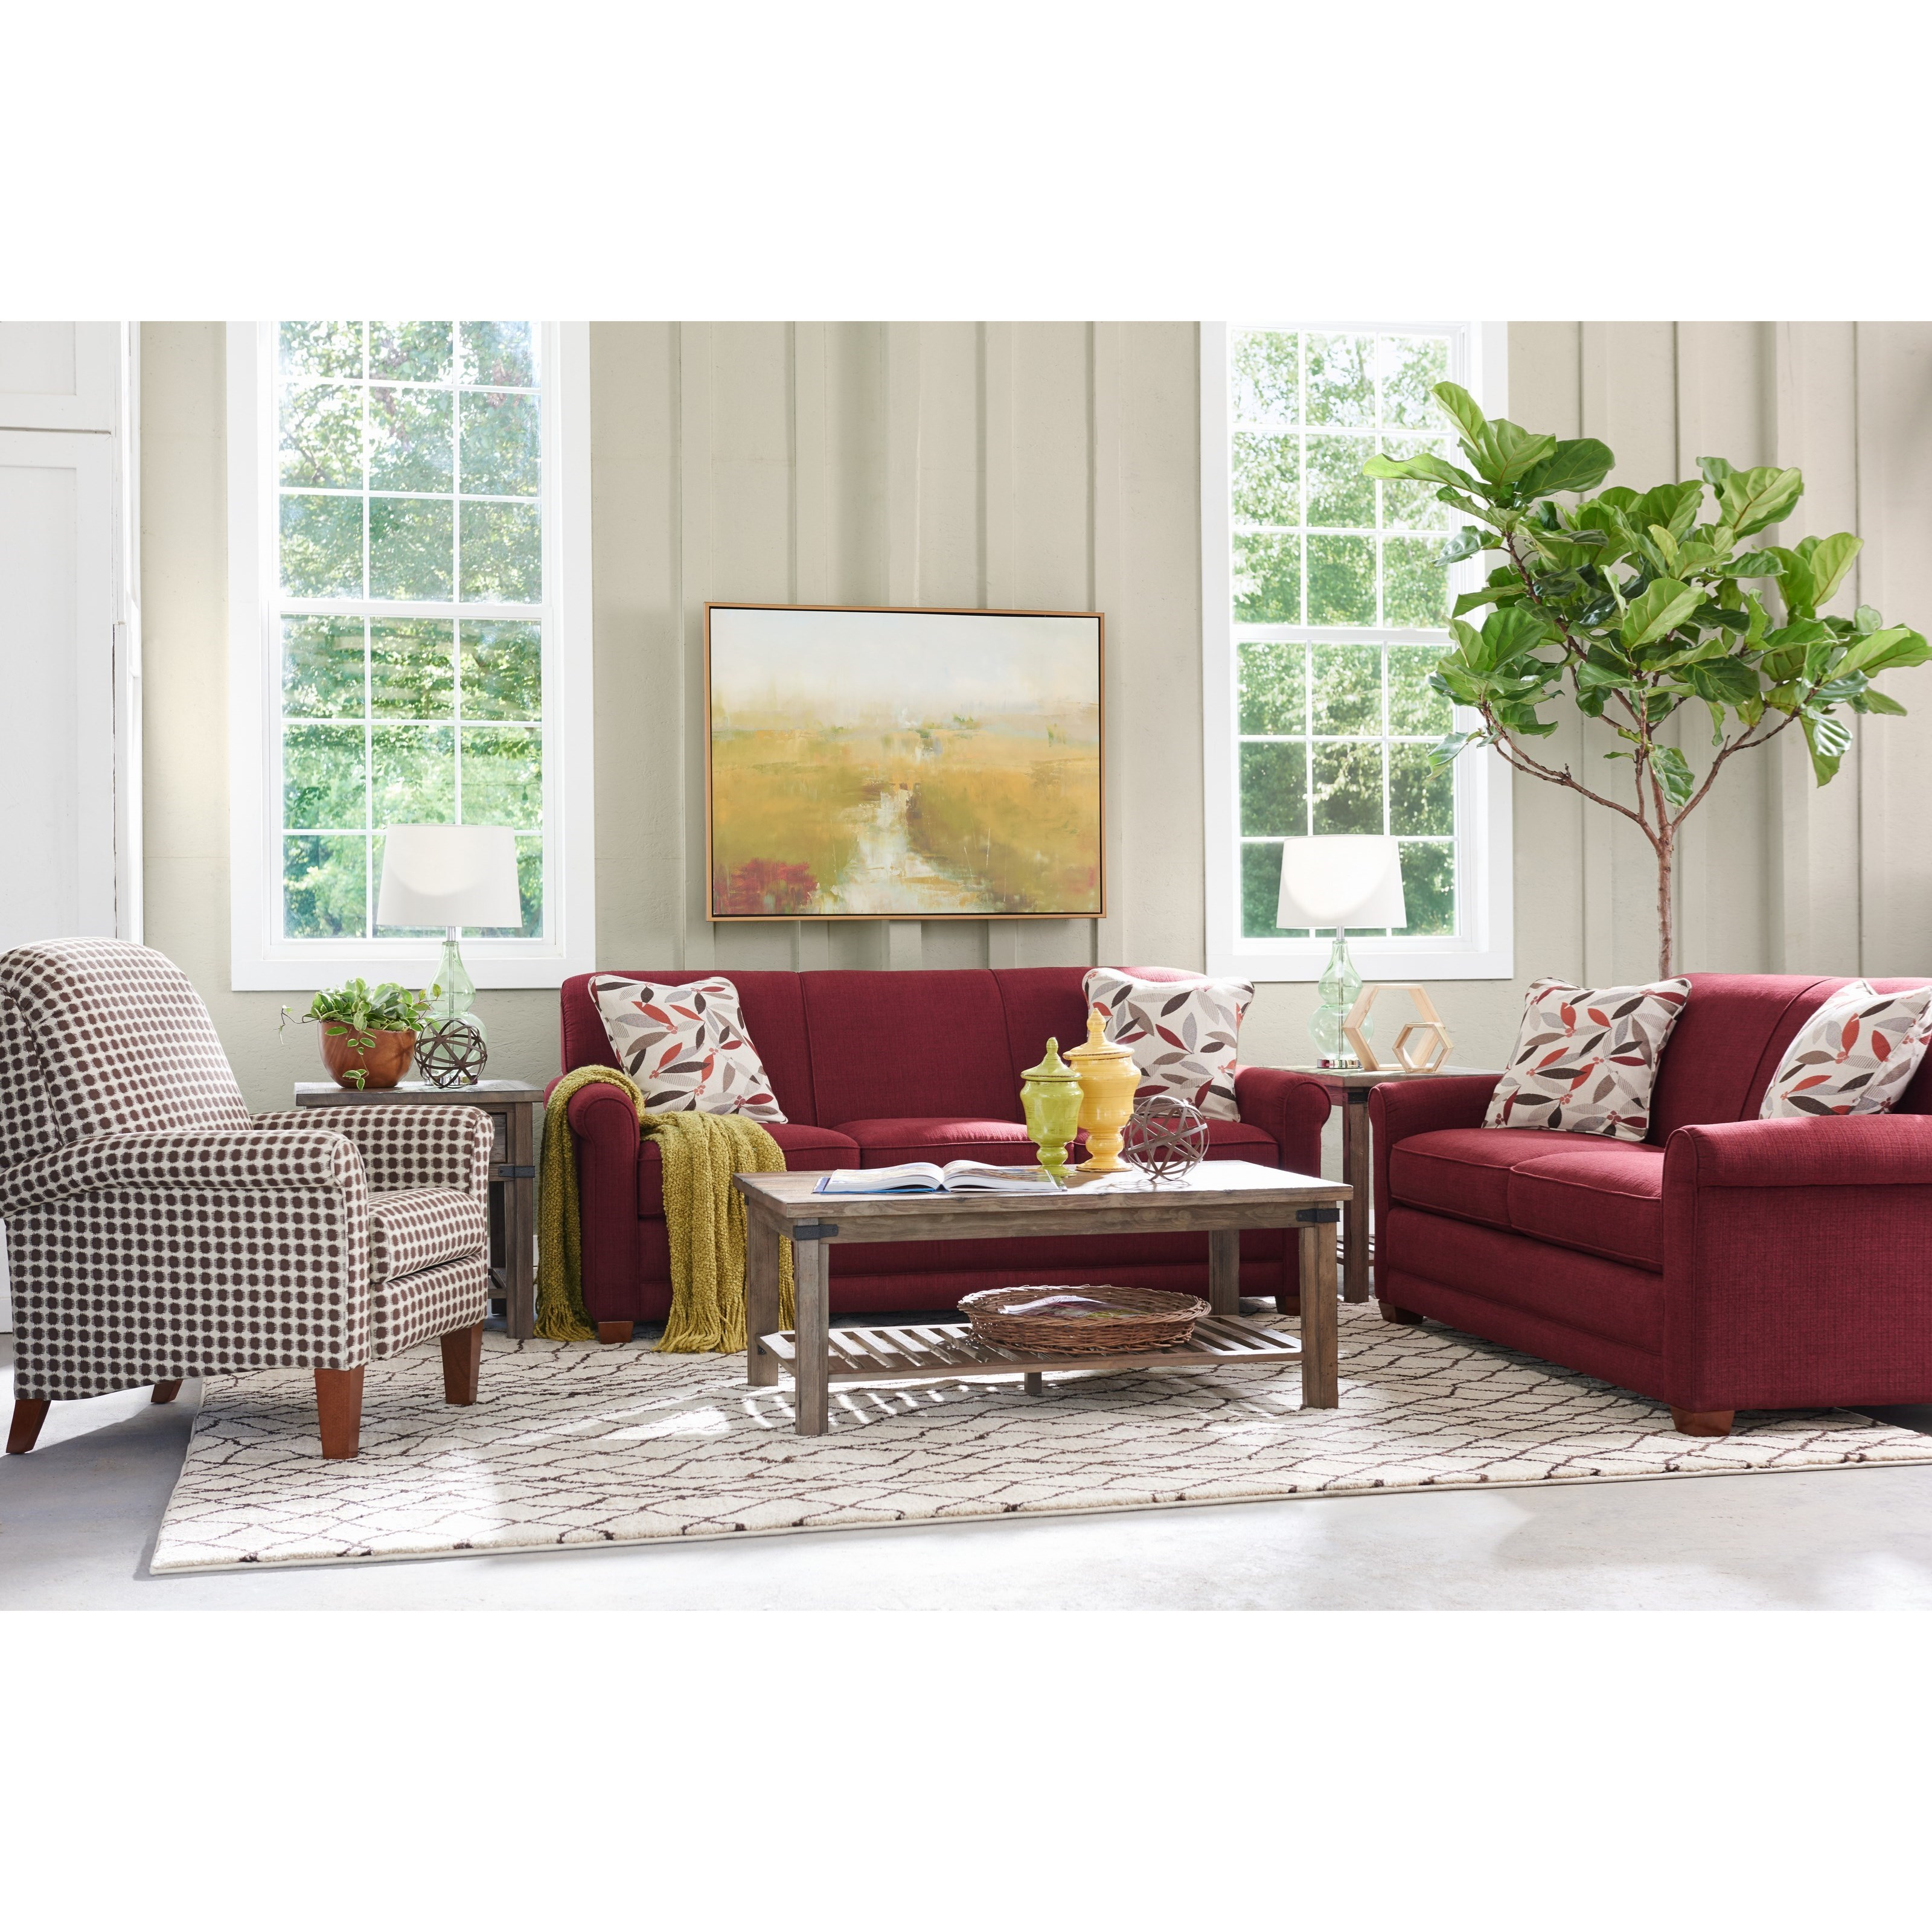 Amanda Living Room Group by La-Z-Boy at Sparks HomeStore